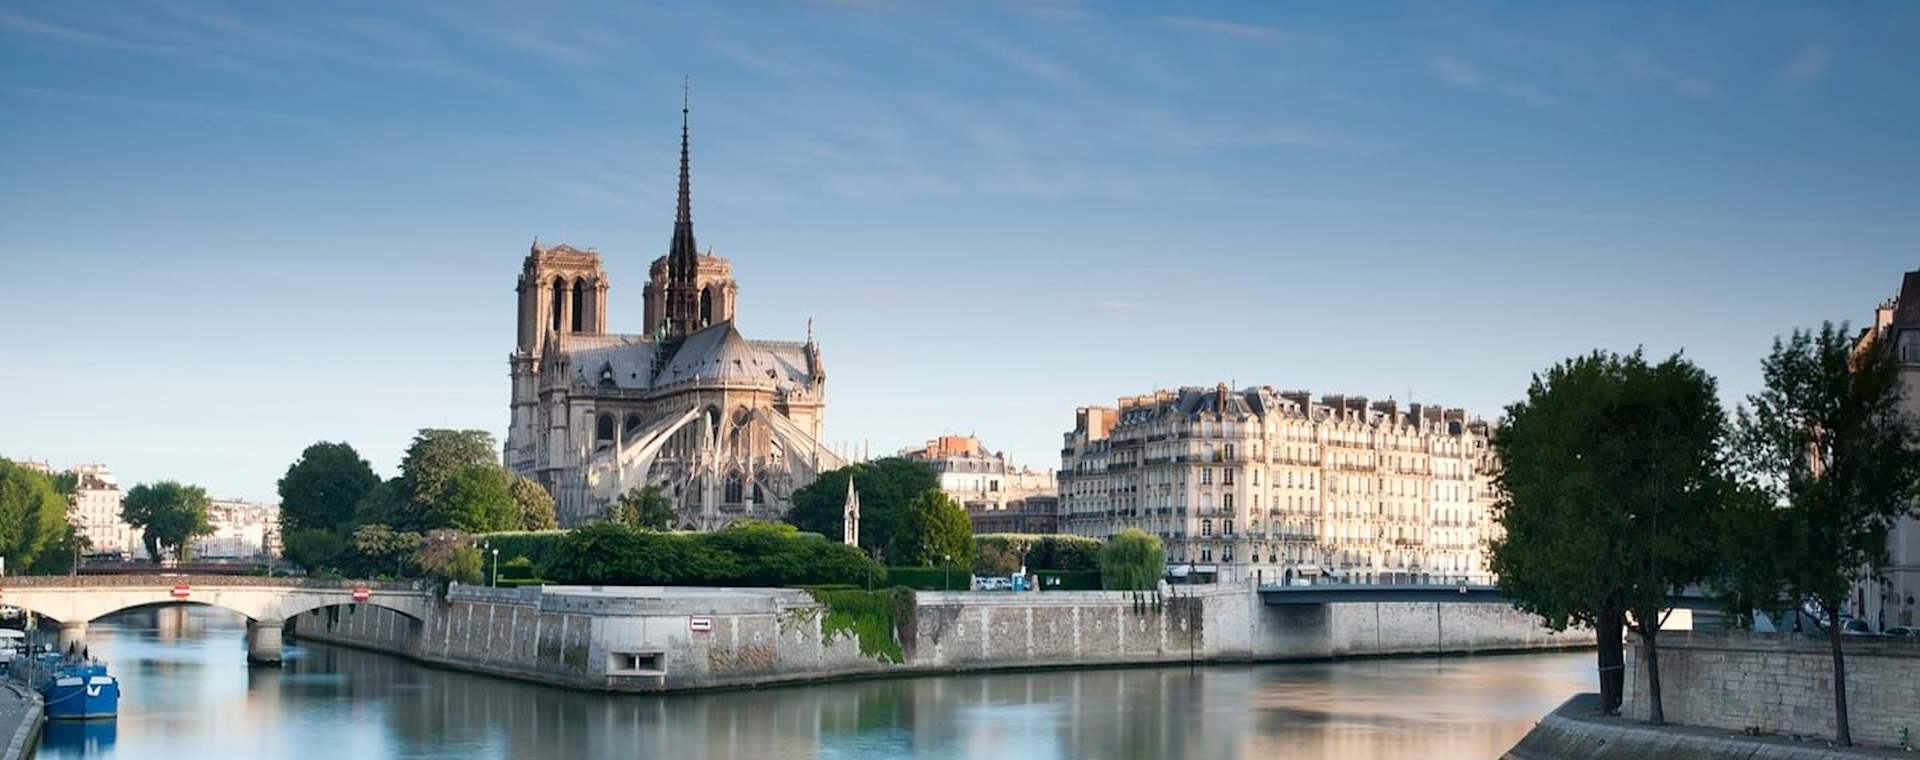 Full Day Highlights of Paris: Notre Dame and Musée d'Orsay Combo Saver Tour